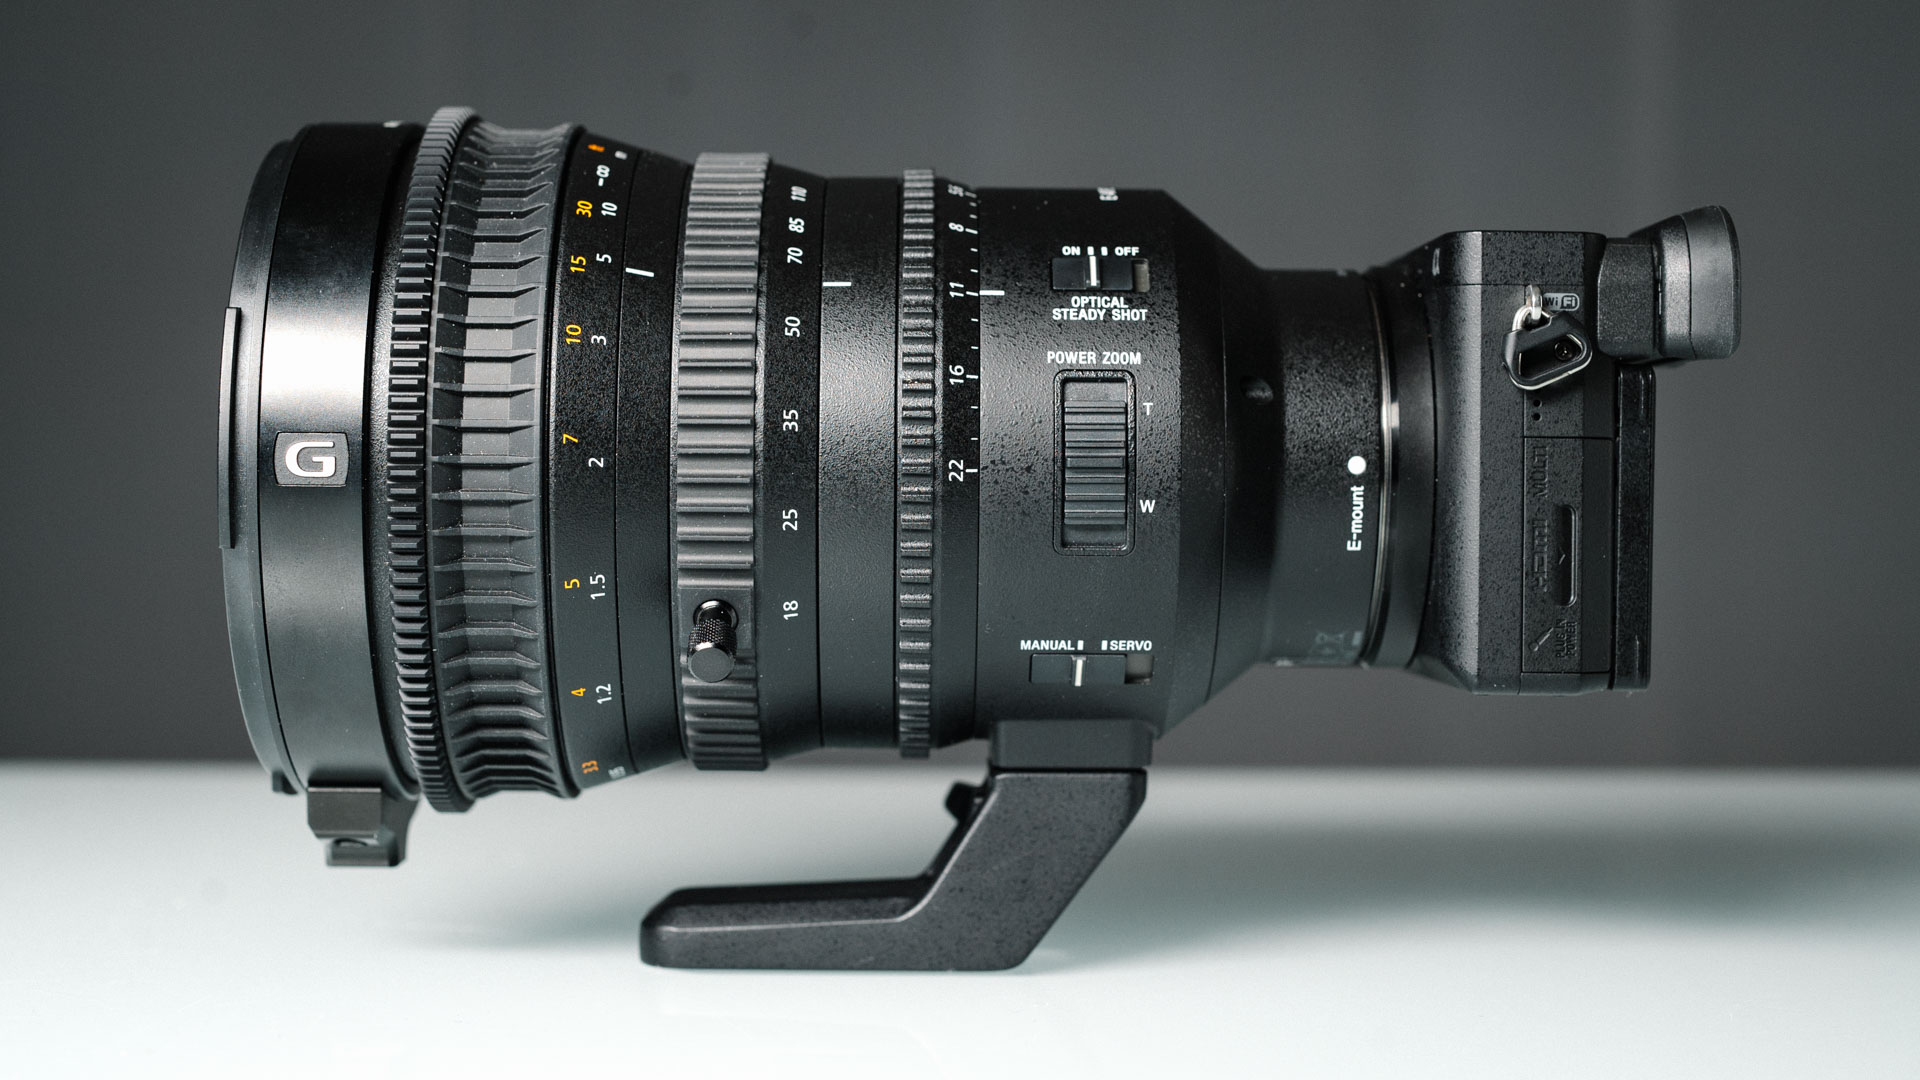 Sony 18 110mm Review One Of A Kind Versatile Video